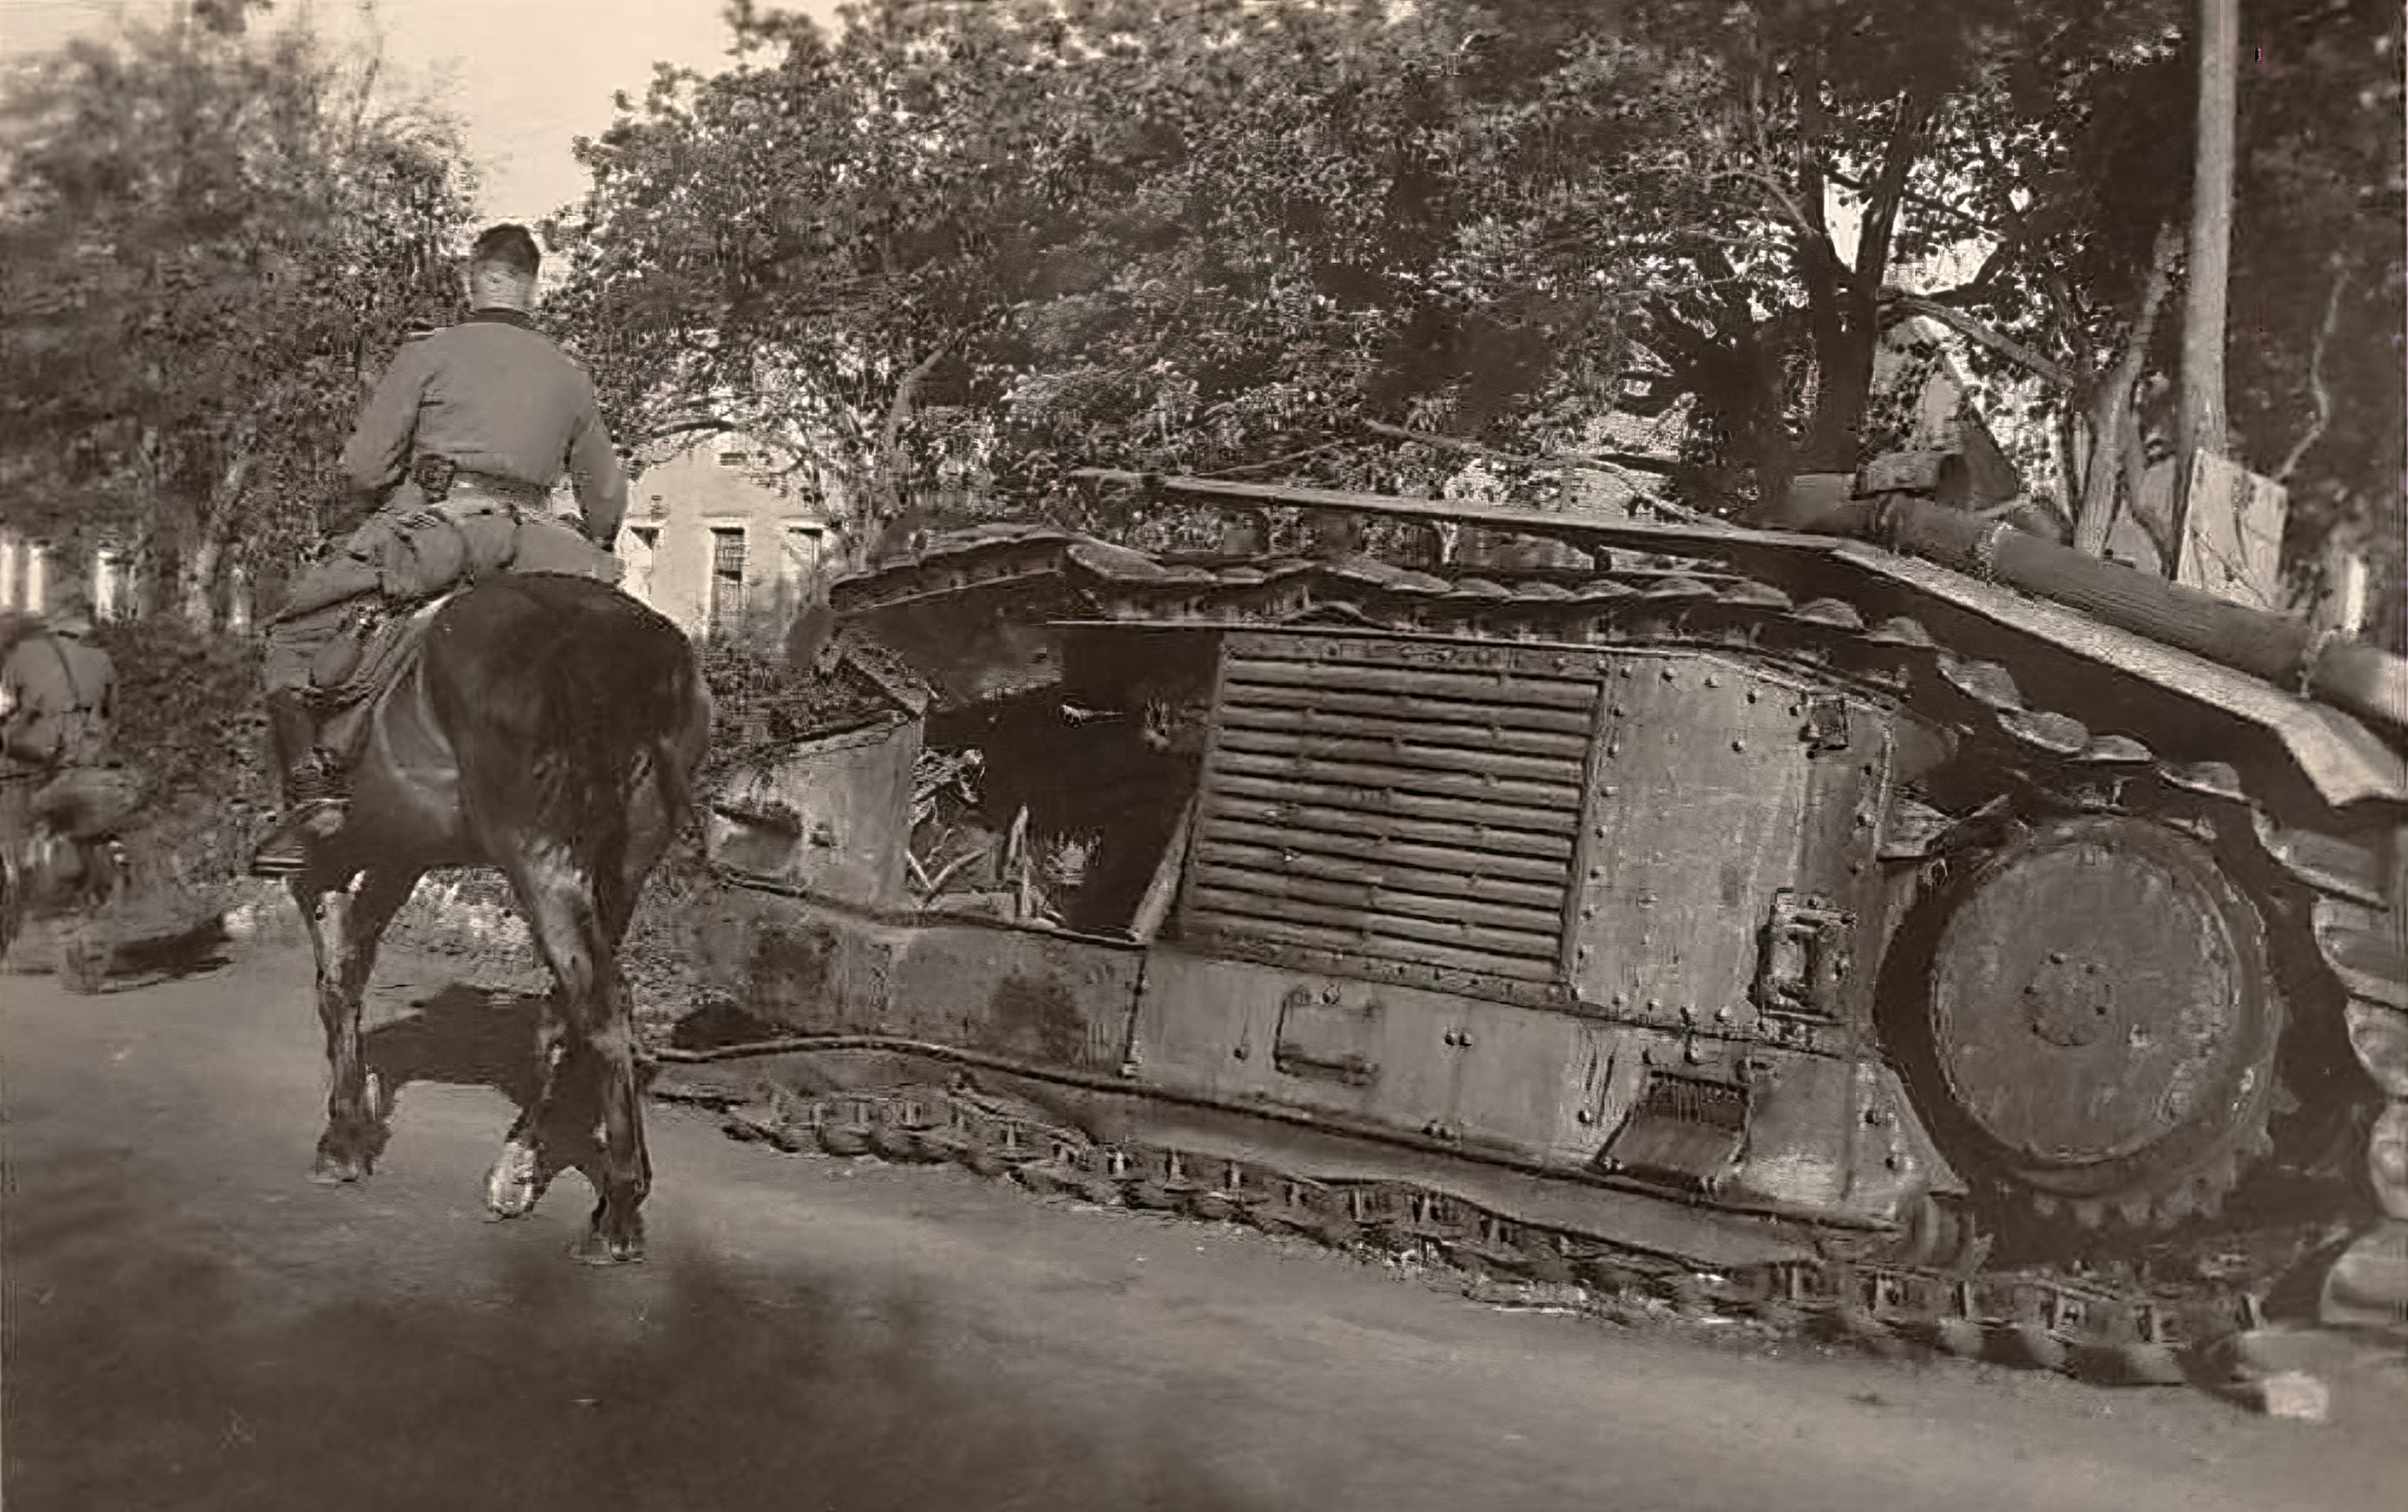 French Army Renault Char B1bis destroyed in Laon France 1940 ebay 01